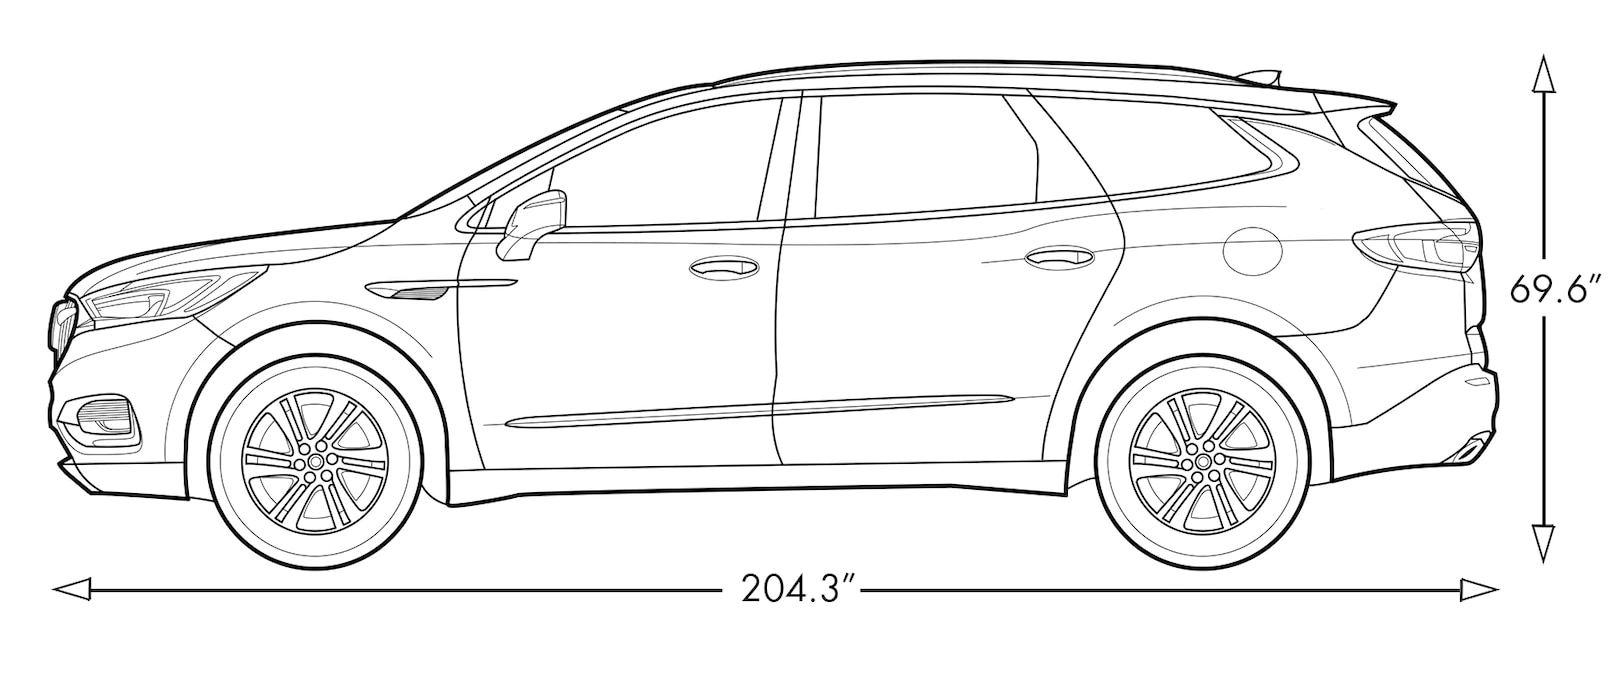 Diagram image showing the height and length of the 2019